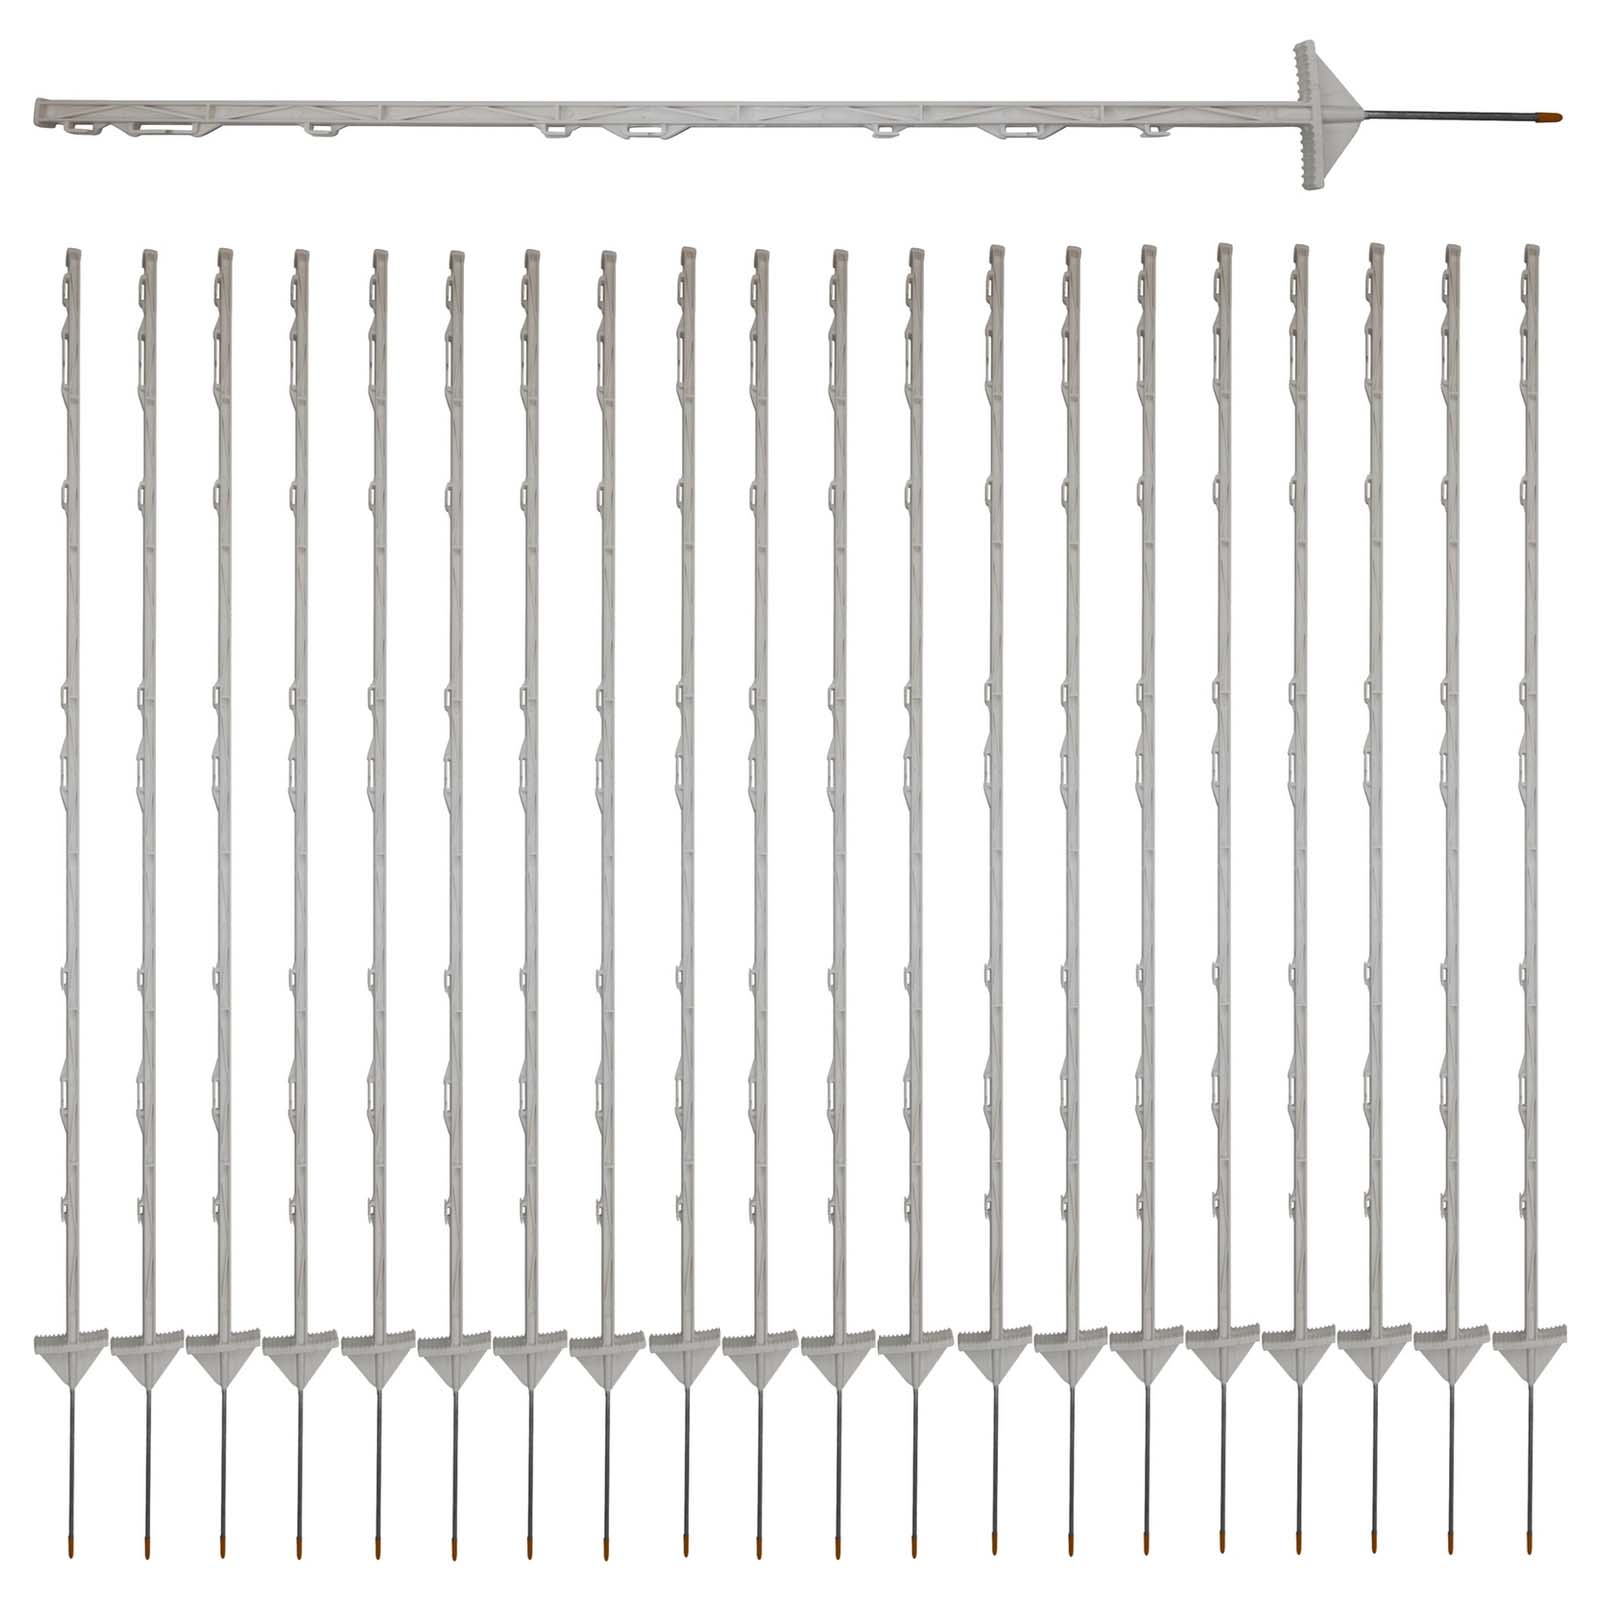 20x Insulated Multi Wire Electric Poly Posts for Electric Fence ...